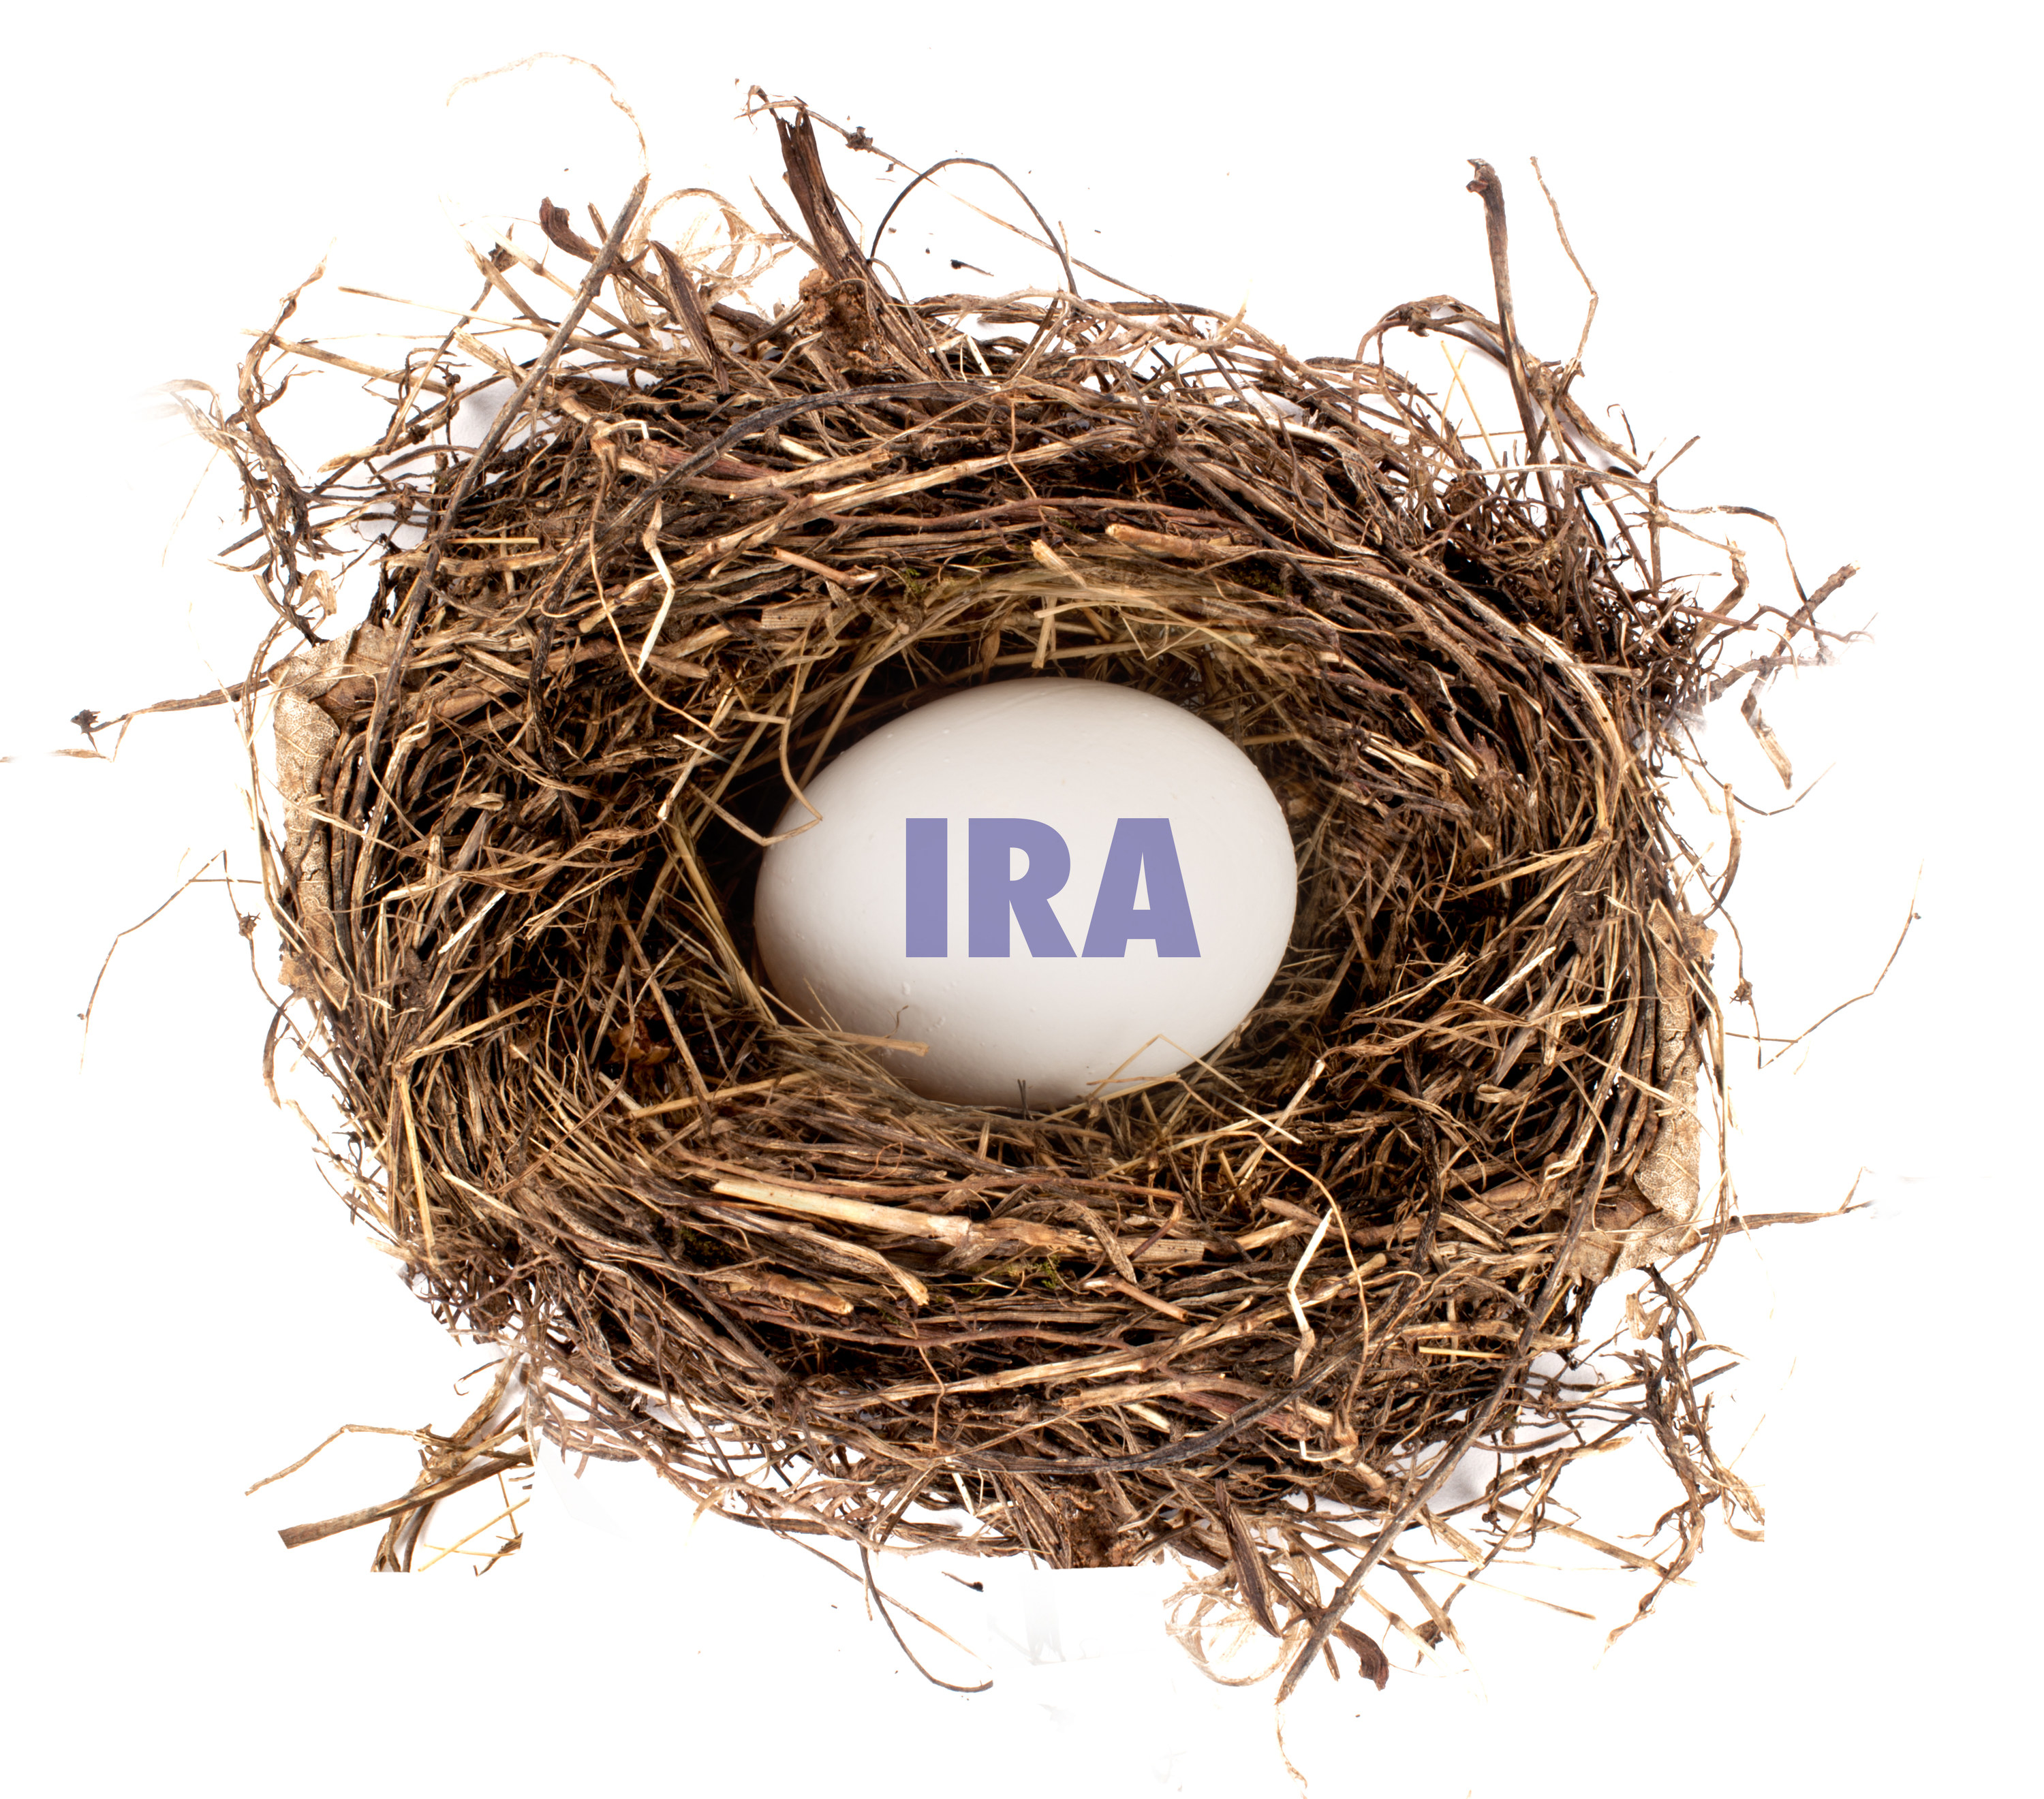 Nest with egg inside labeled IRA